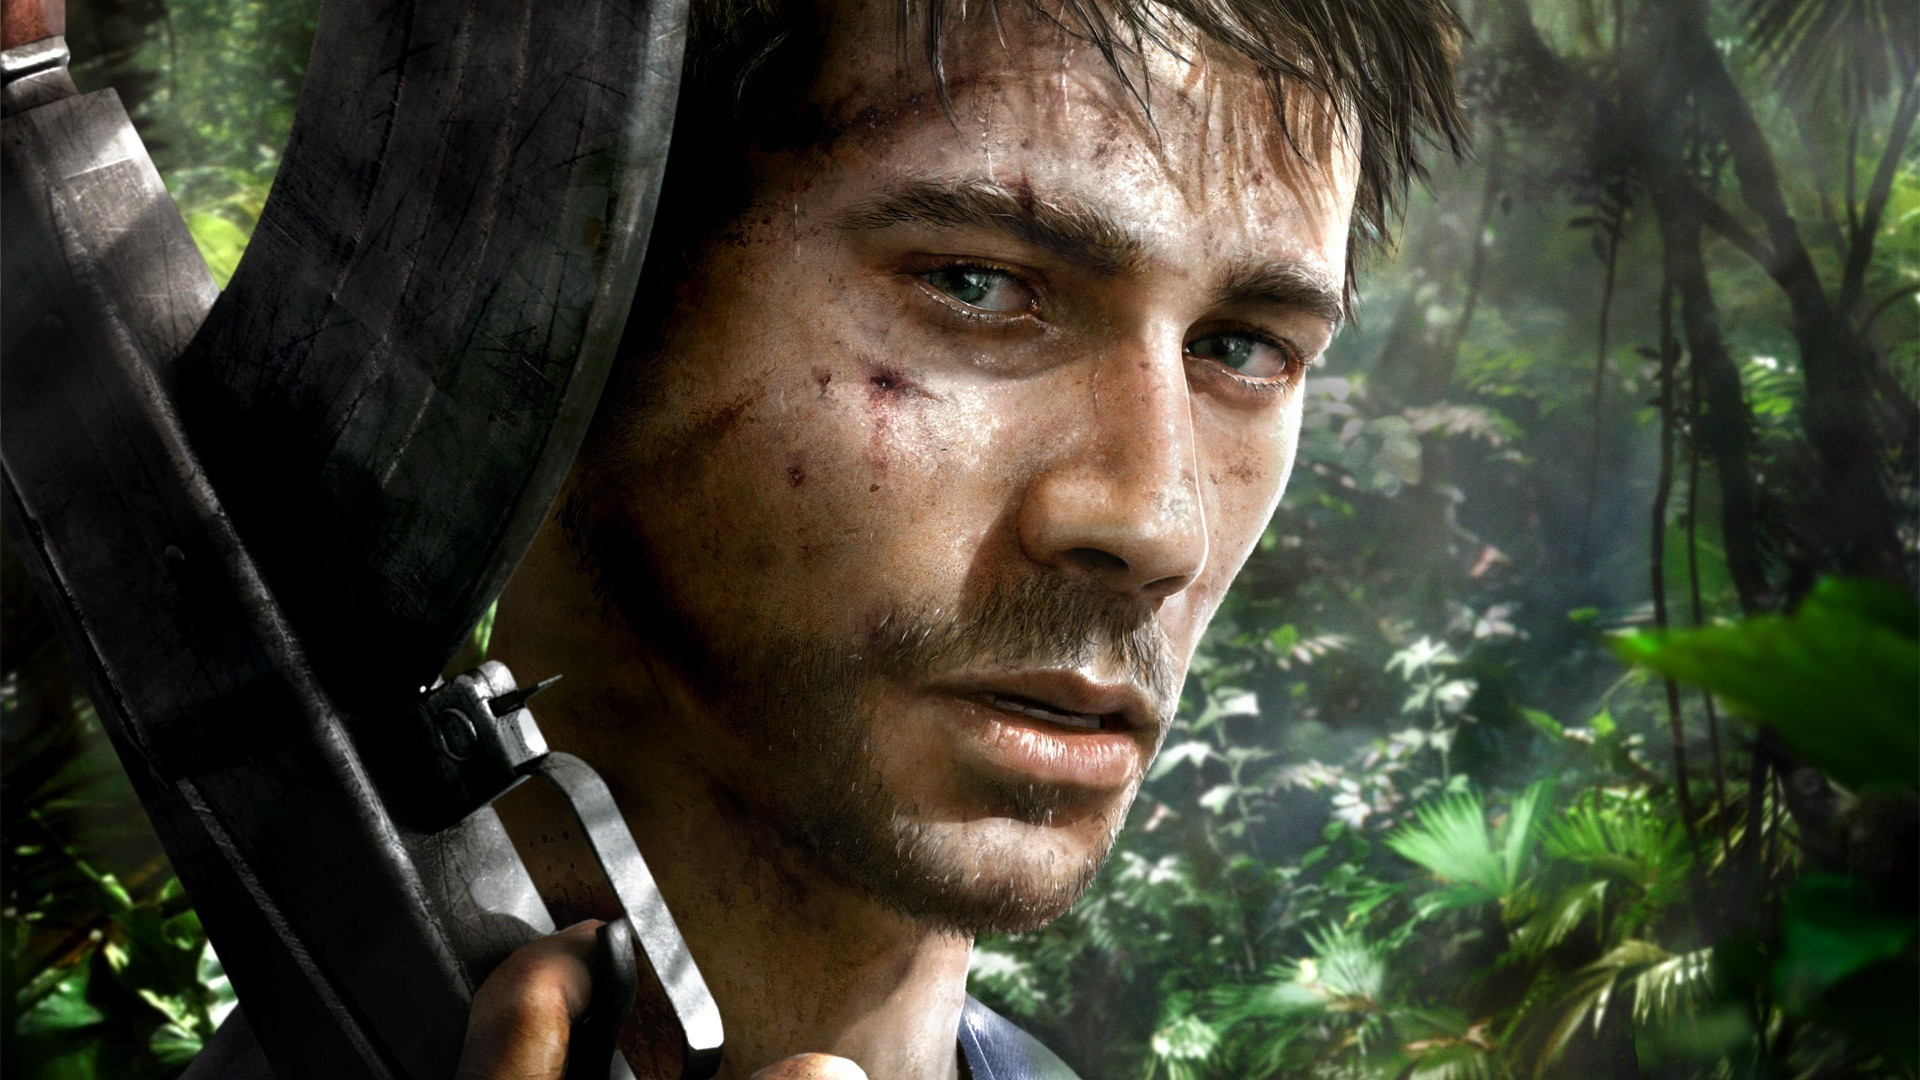 How to avoid sexual content in far cry 3